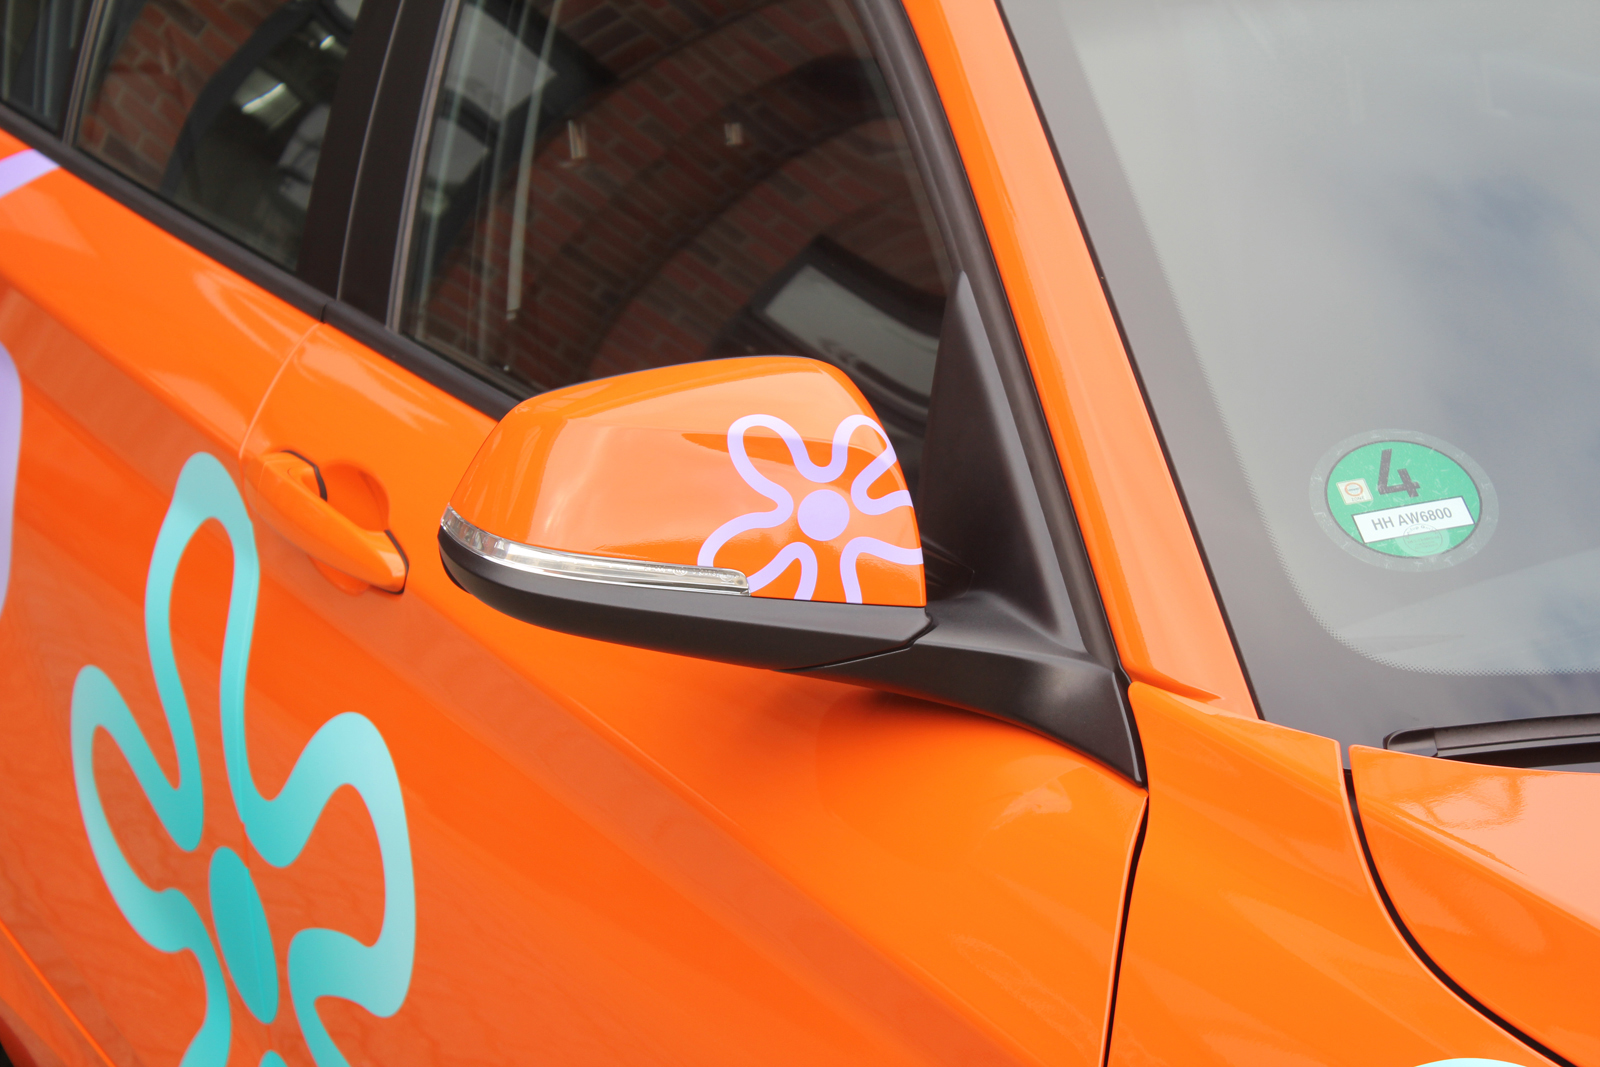 BMW_1ER_CAR-WRAPPING_ORANGE_GLANZ_FOLIE_BLUMEN_09